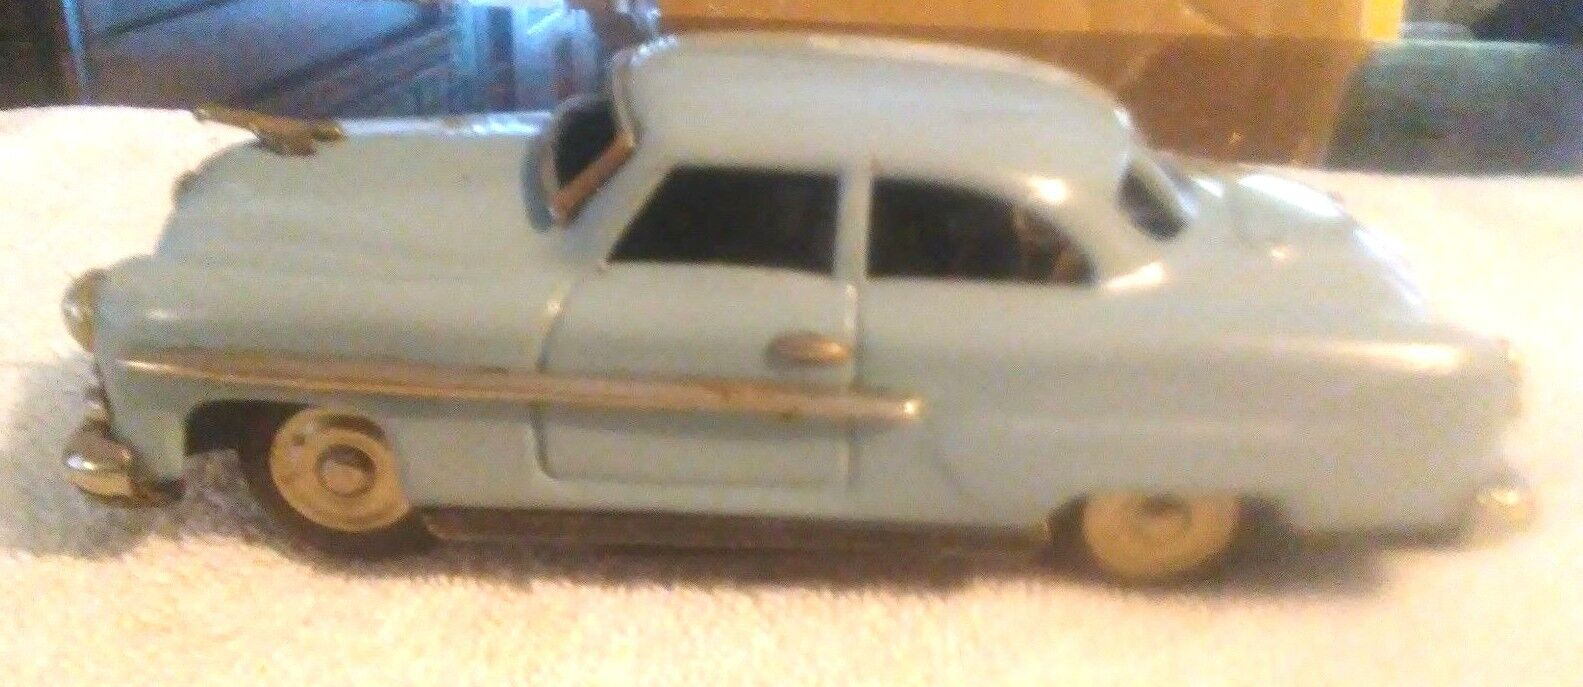 Battery Operated Rare Old Cadillac Sedan Worre Condition 7 lungo 1952 Giappone